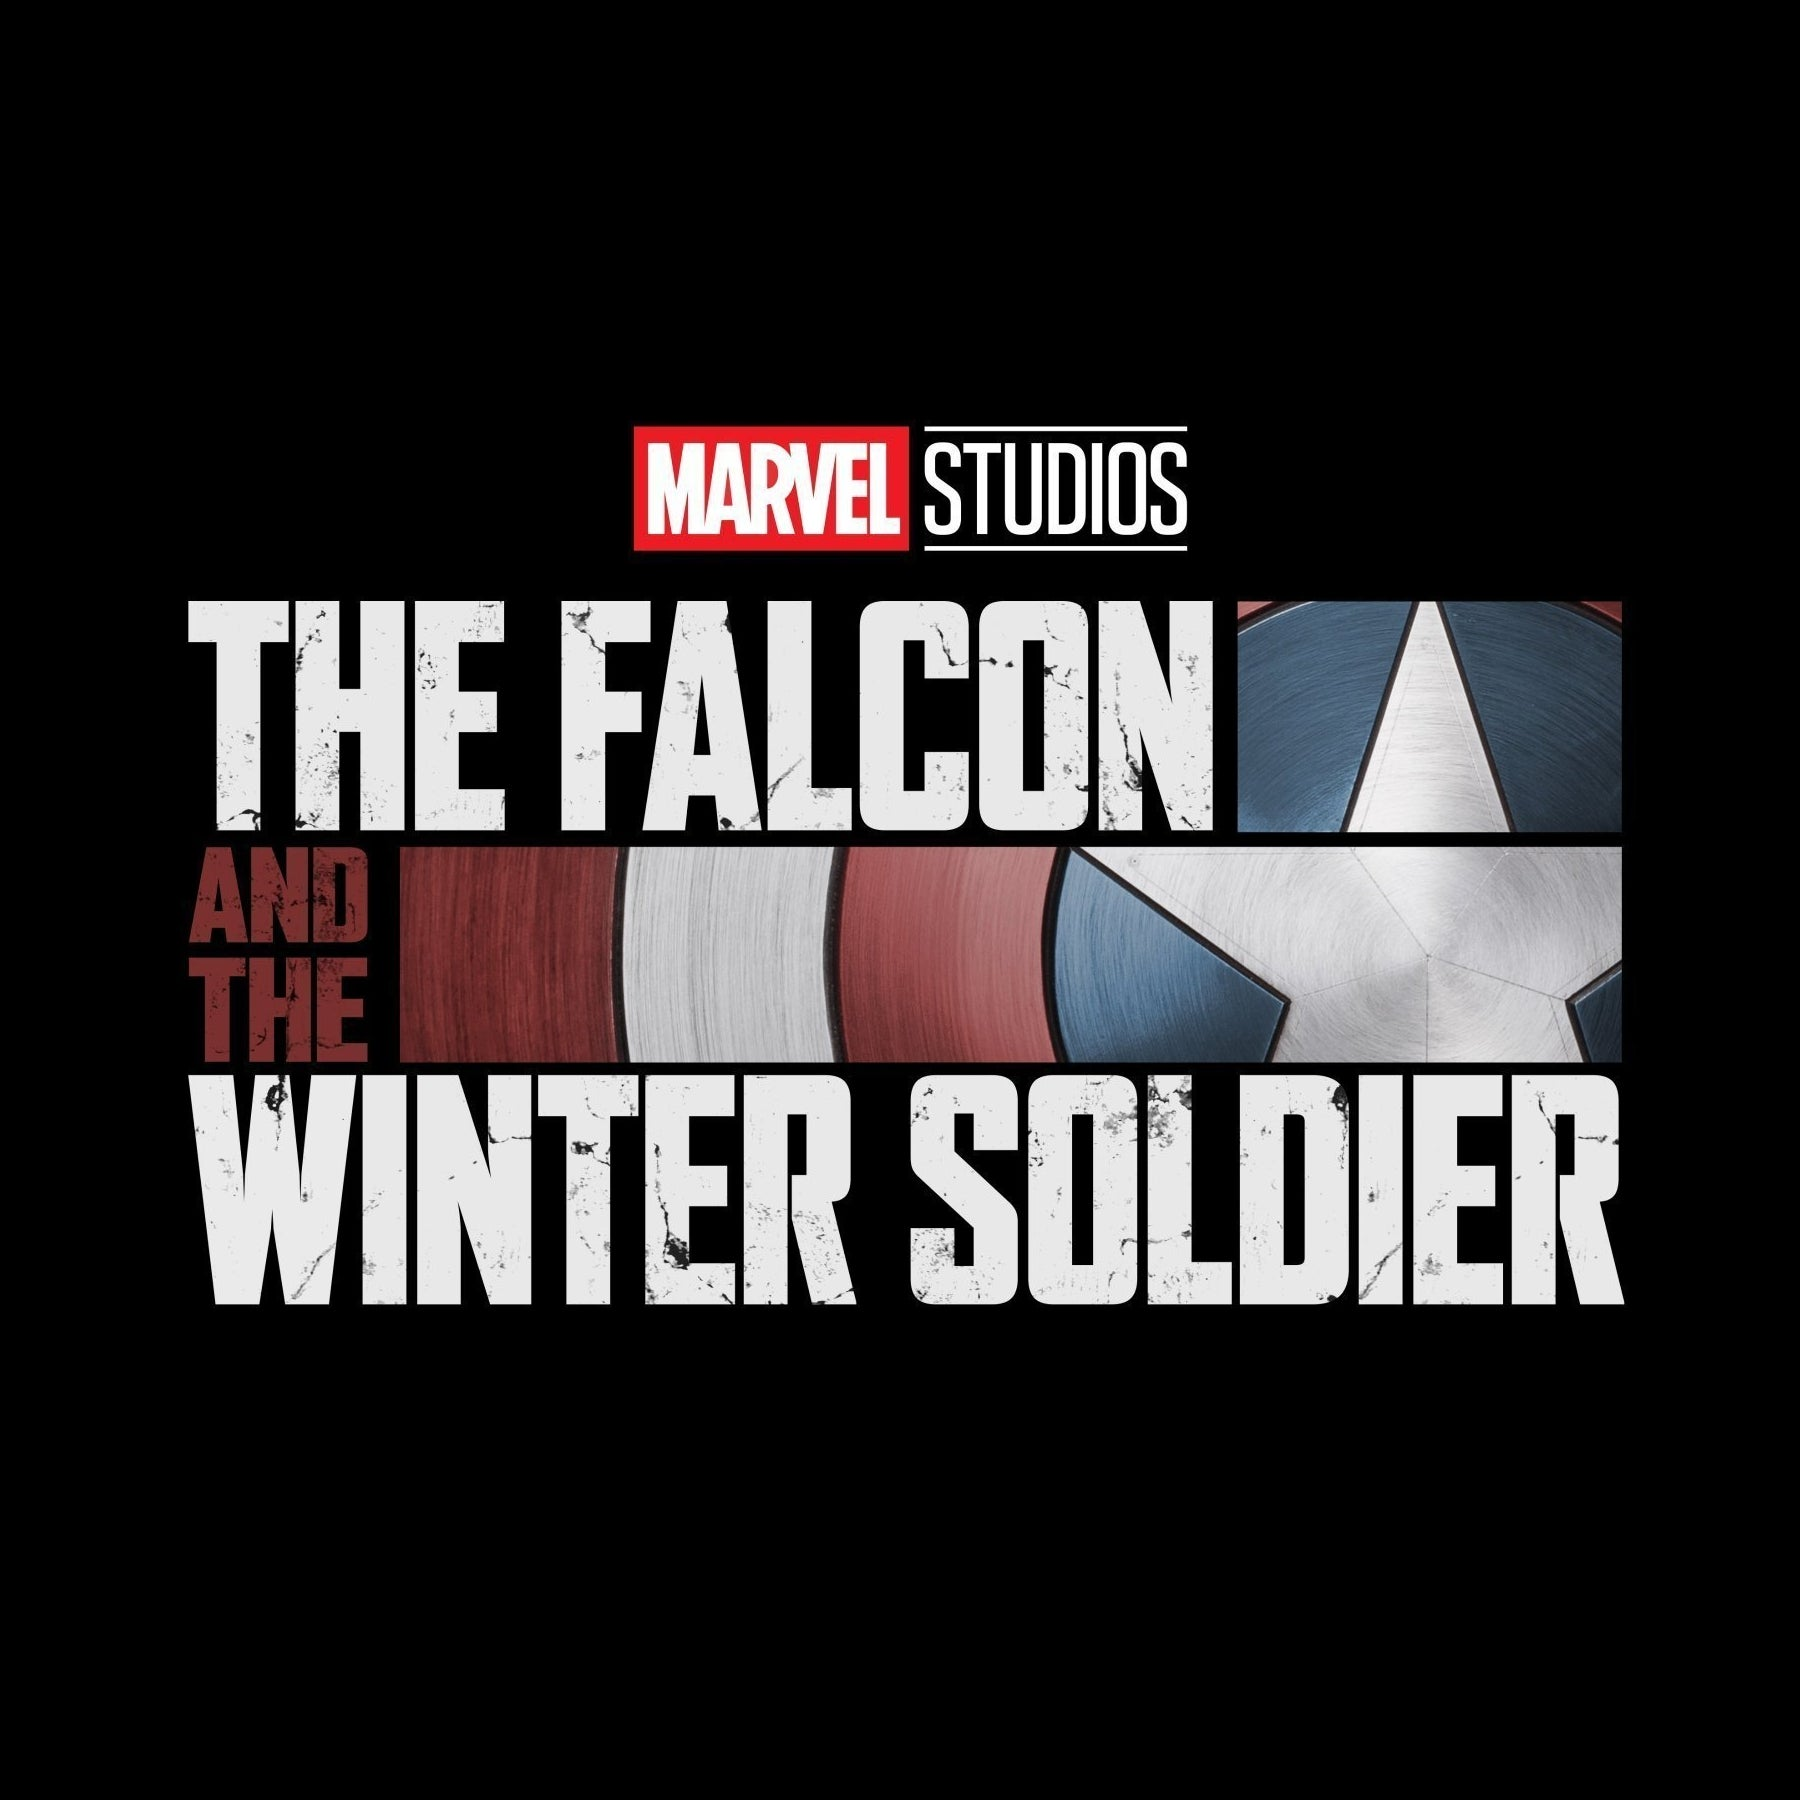 Falcon and the Winter Soldier - MCU Giai đoạn 4 - ELLE Man